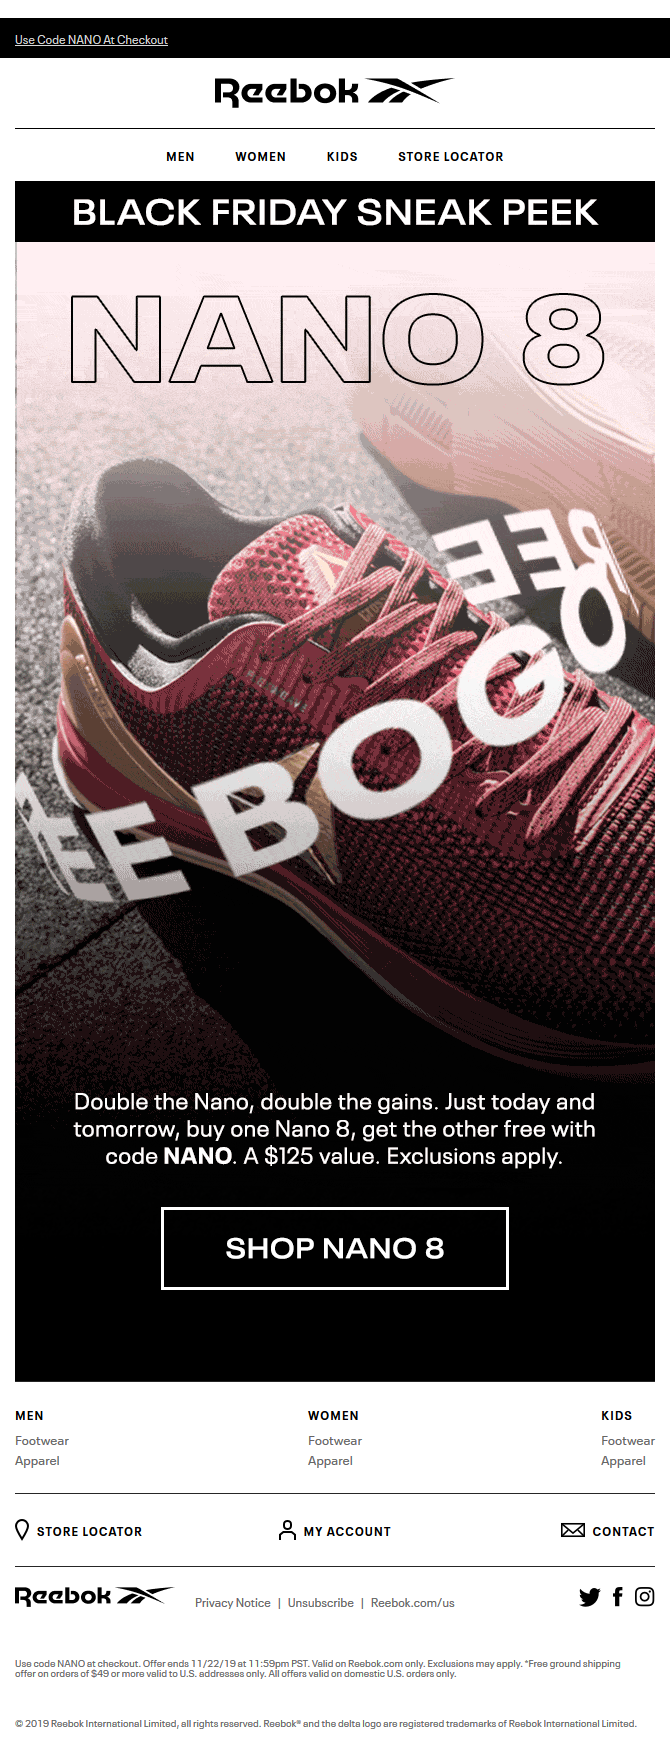 Nano 8 BOGO Free: Black Friday Sneak Peek